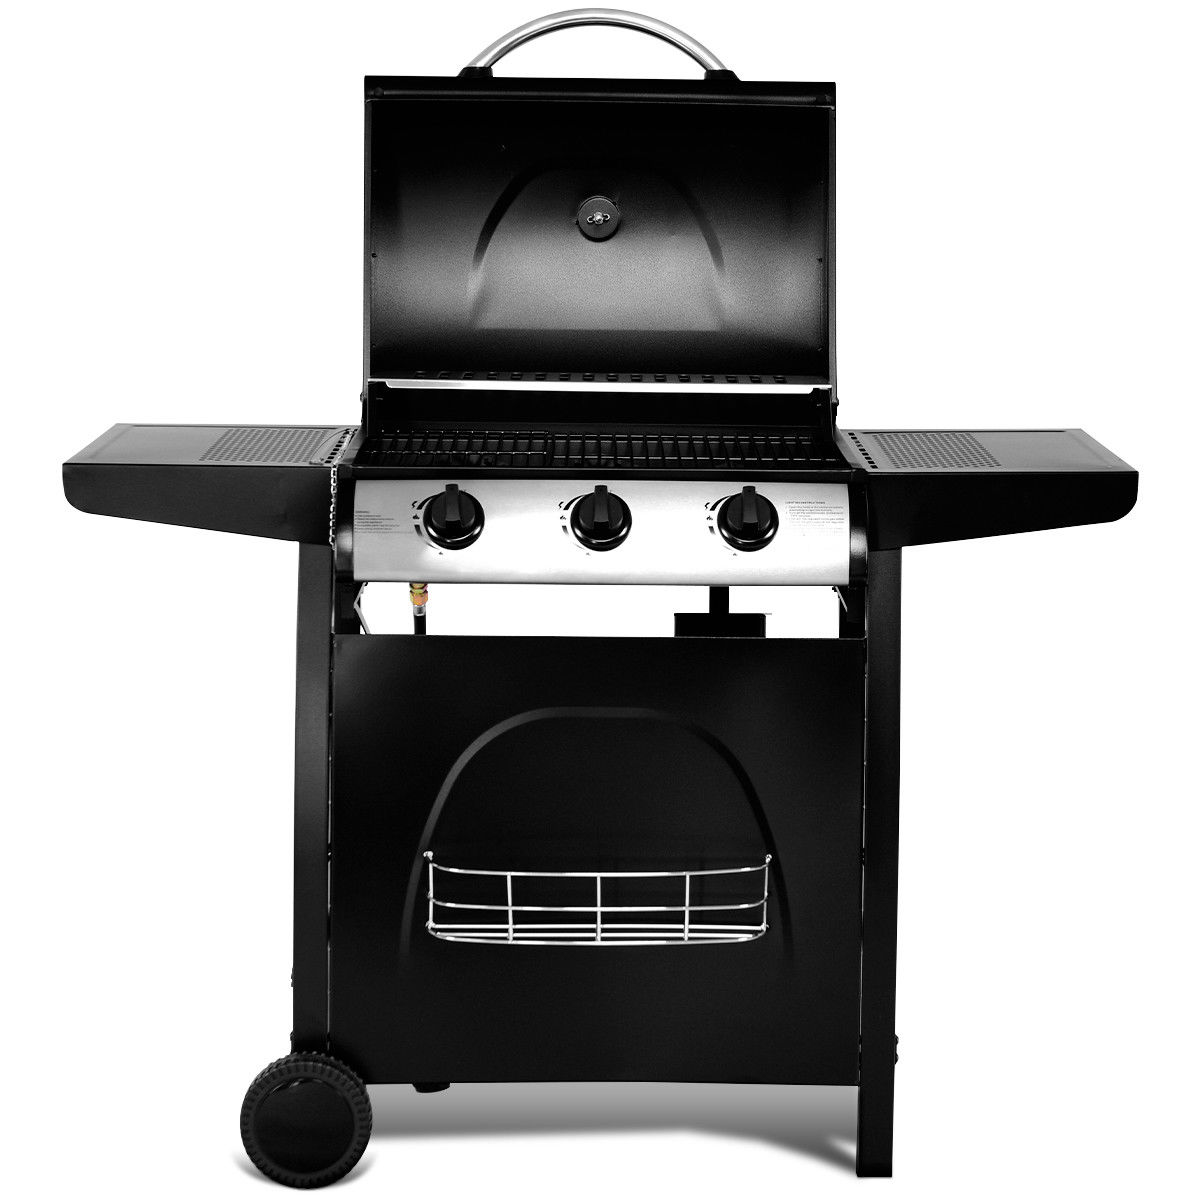 Gymax 3-Burner Liquid Propane Gas BBQ Grill Backyard Barbecue Outdoor Black W/Casters